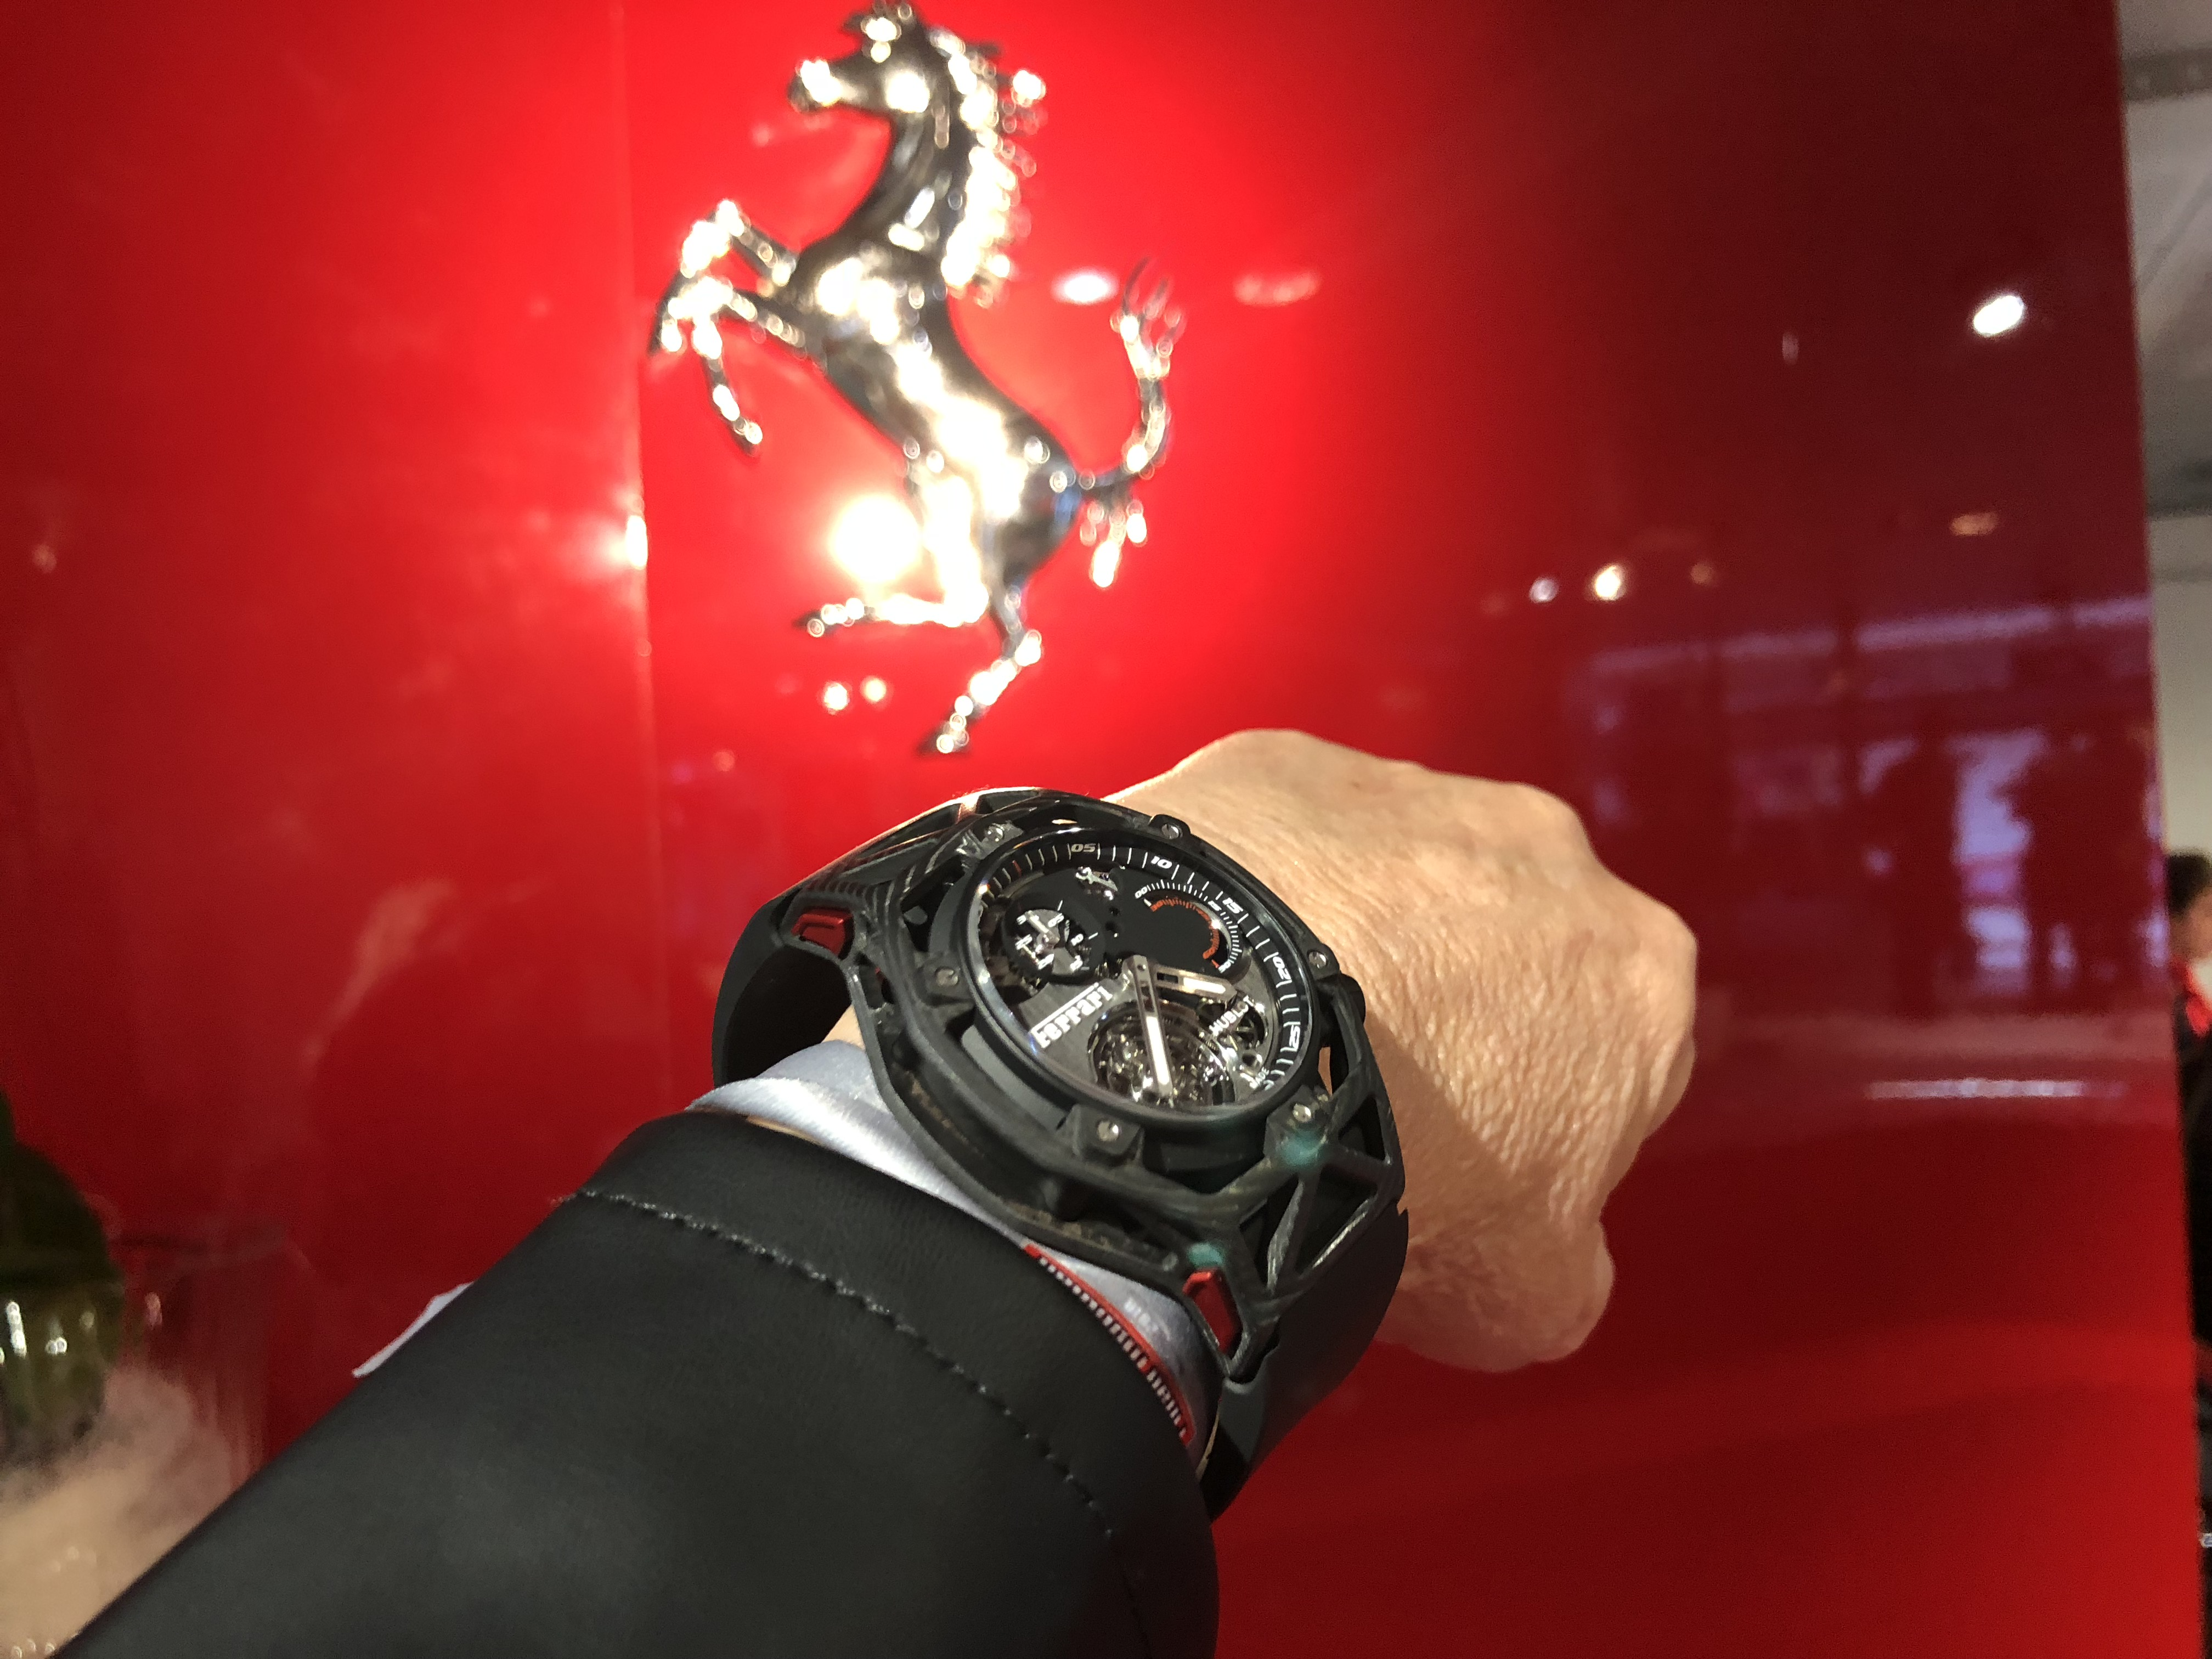 Hublot Ferrari TechFrame Tourbillon